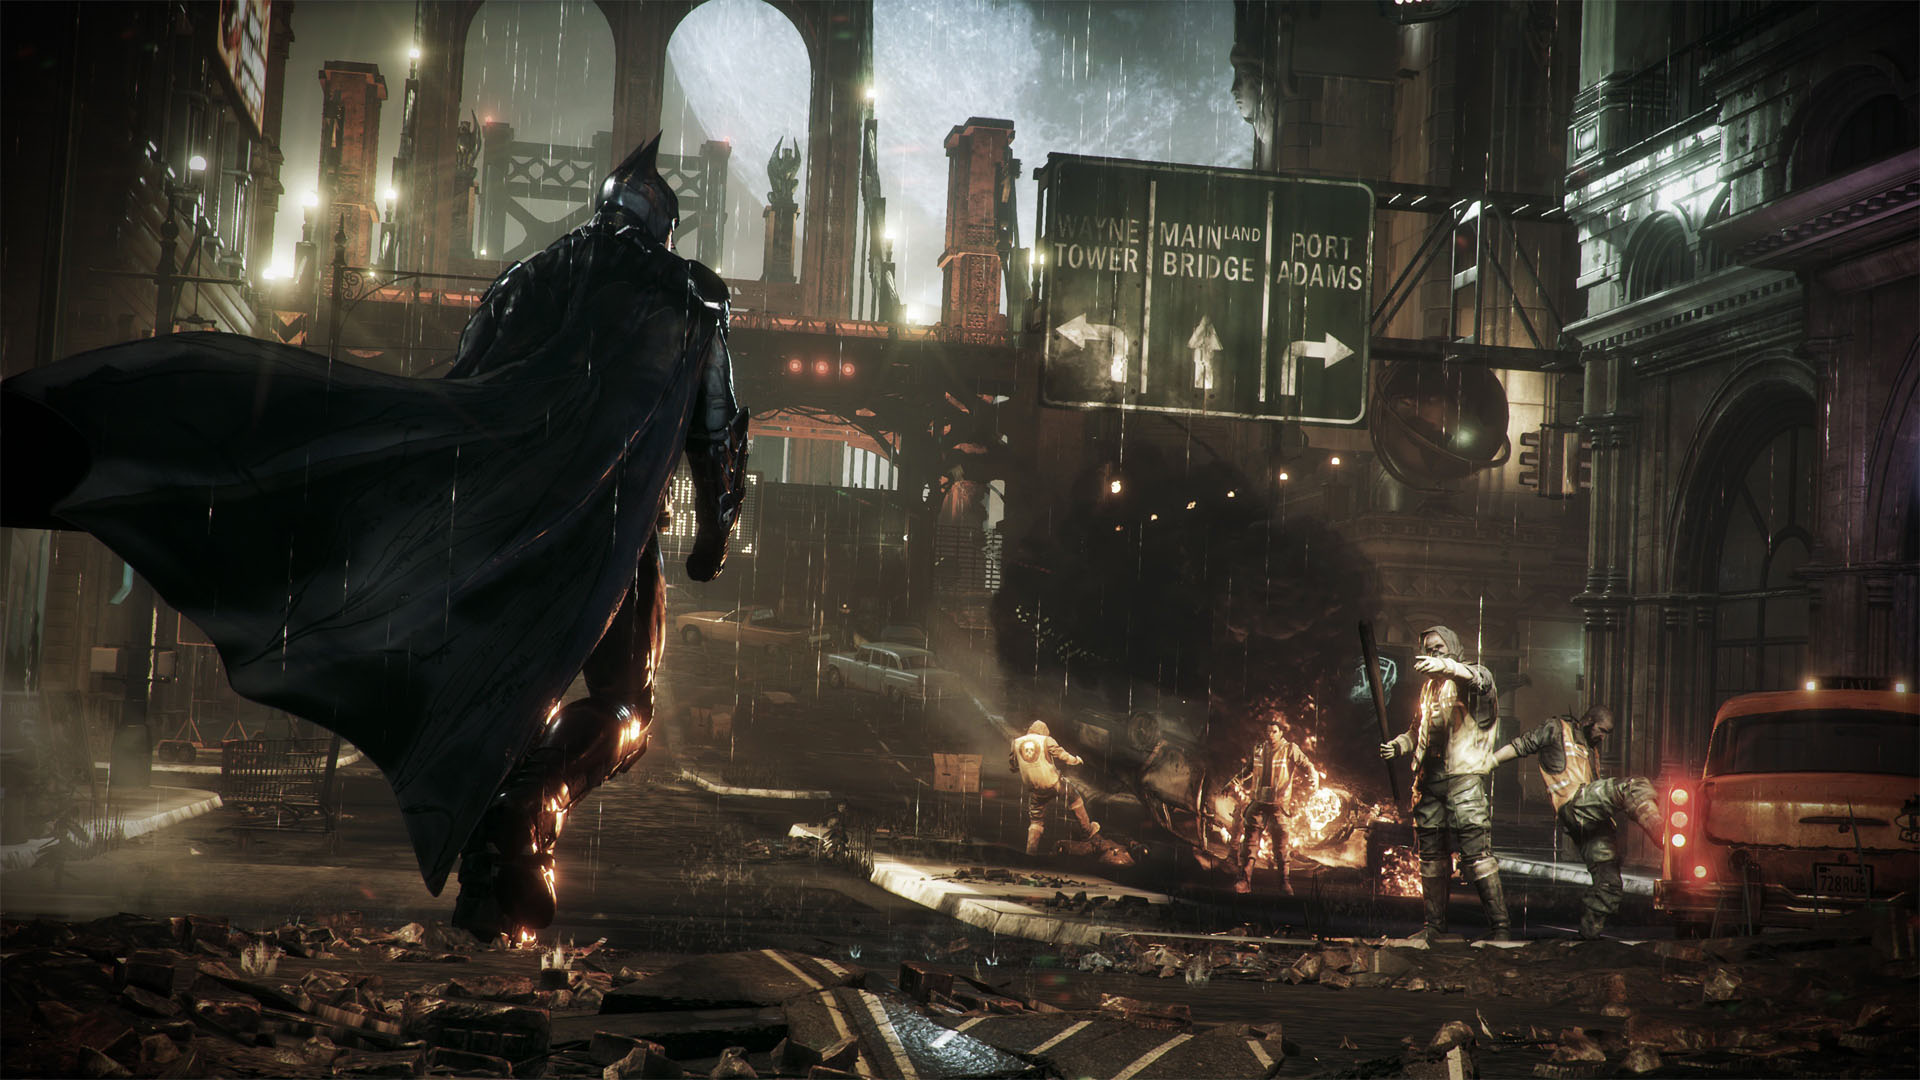 Batman Fight Scarecrow Arkham Knight HD Wallpaper   Stylish HD 1920x1080